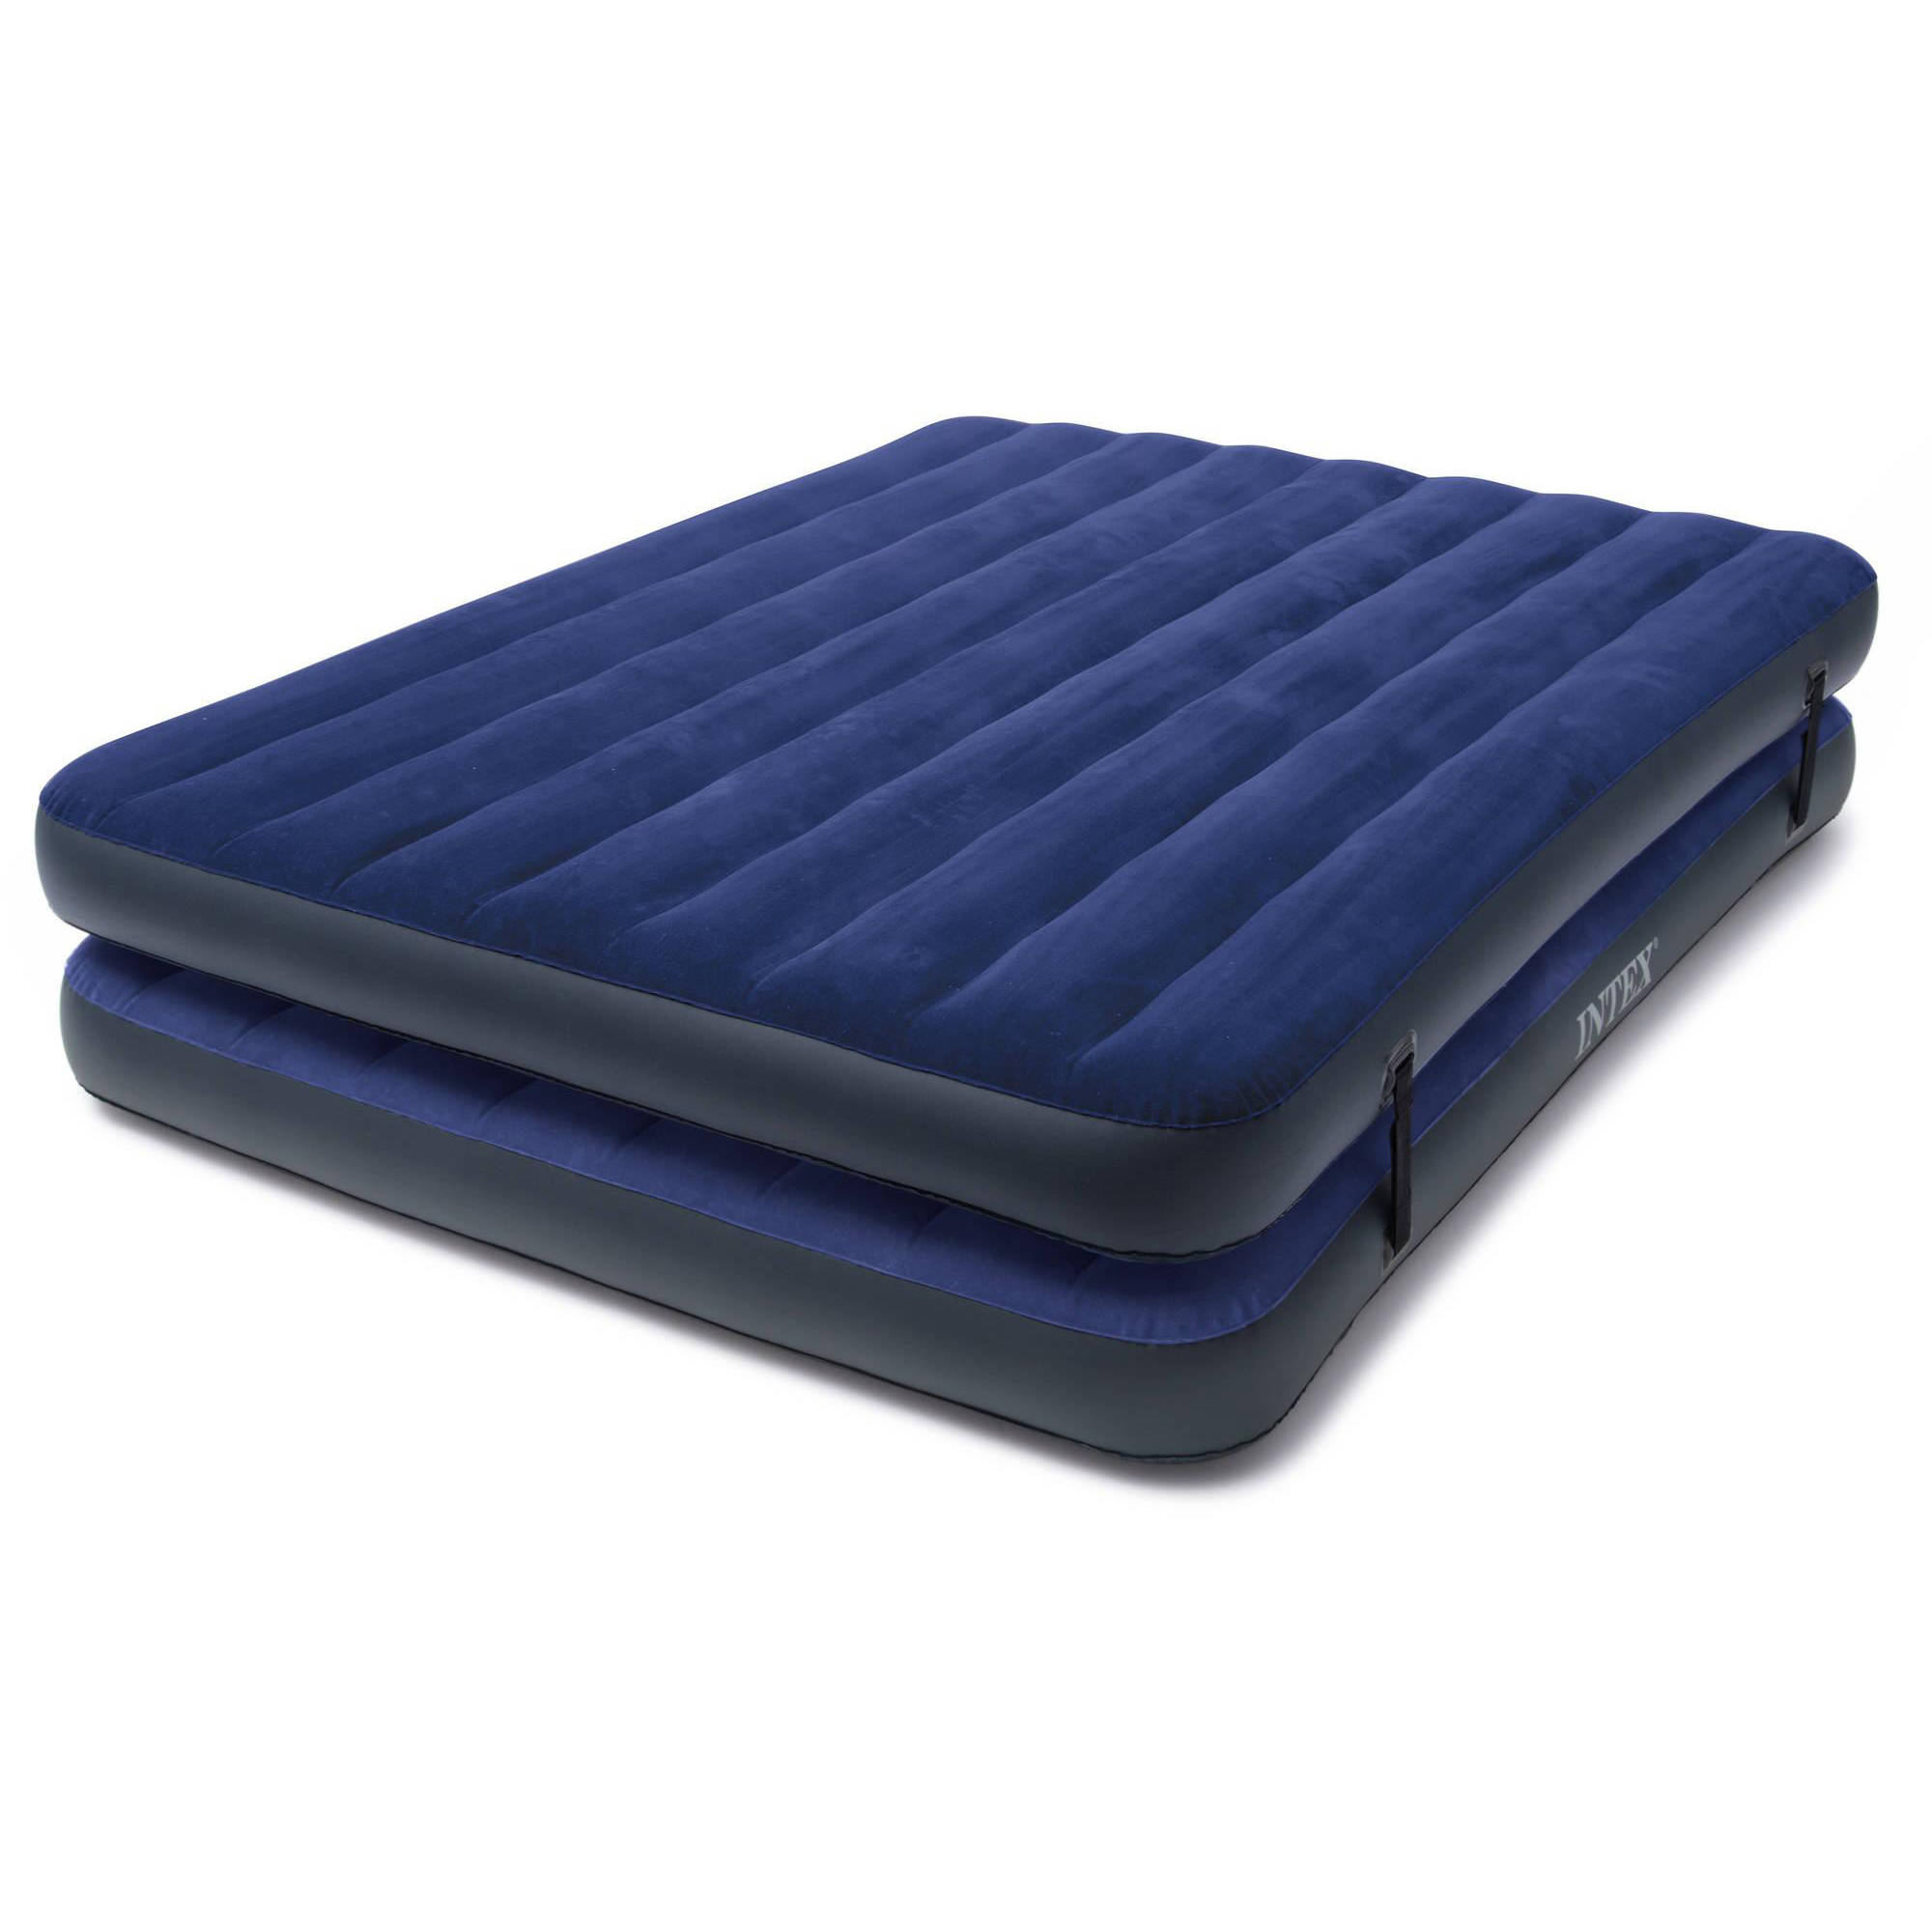 mattress queen beds bestway q air built mats bw sleeping itm bed in inflatable electric